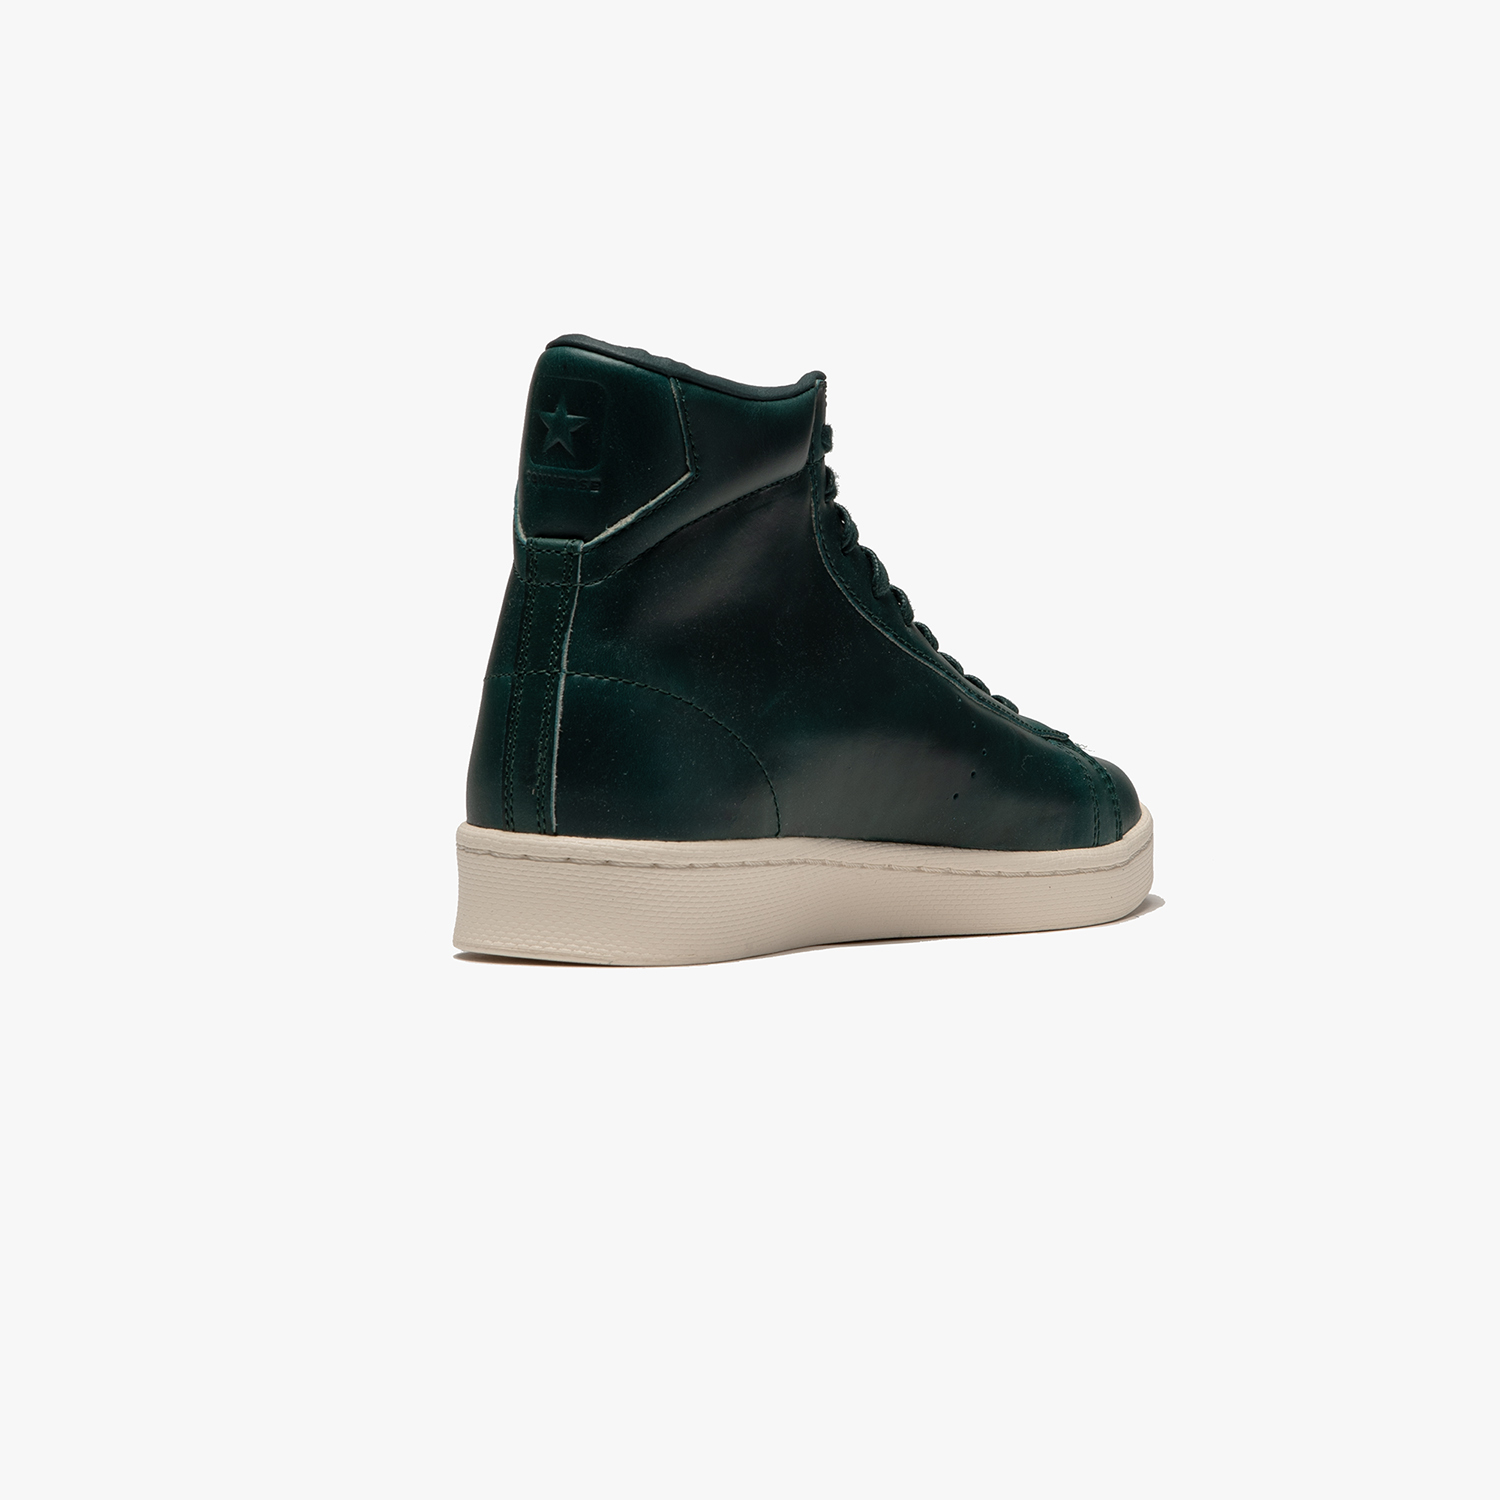 Converse Pro Leather Hi x Horween